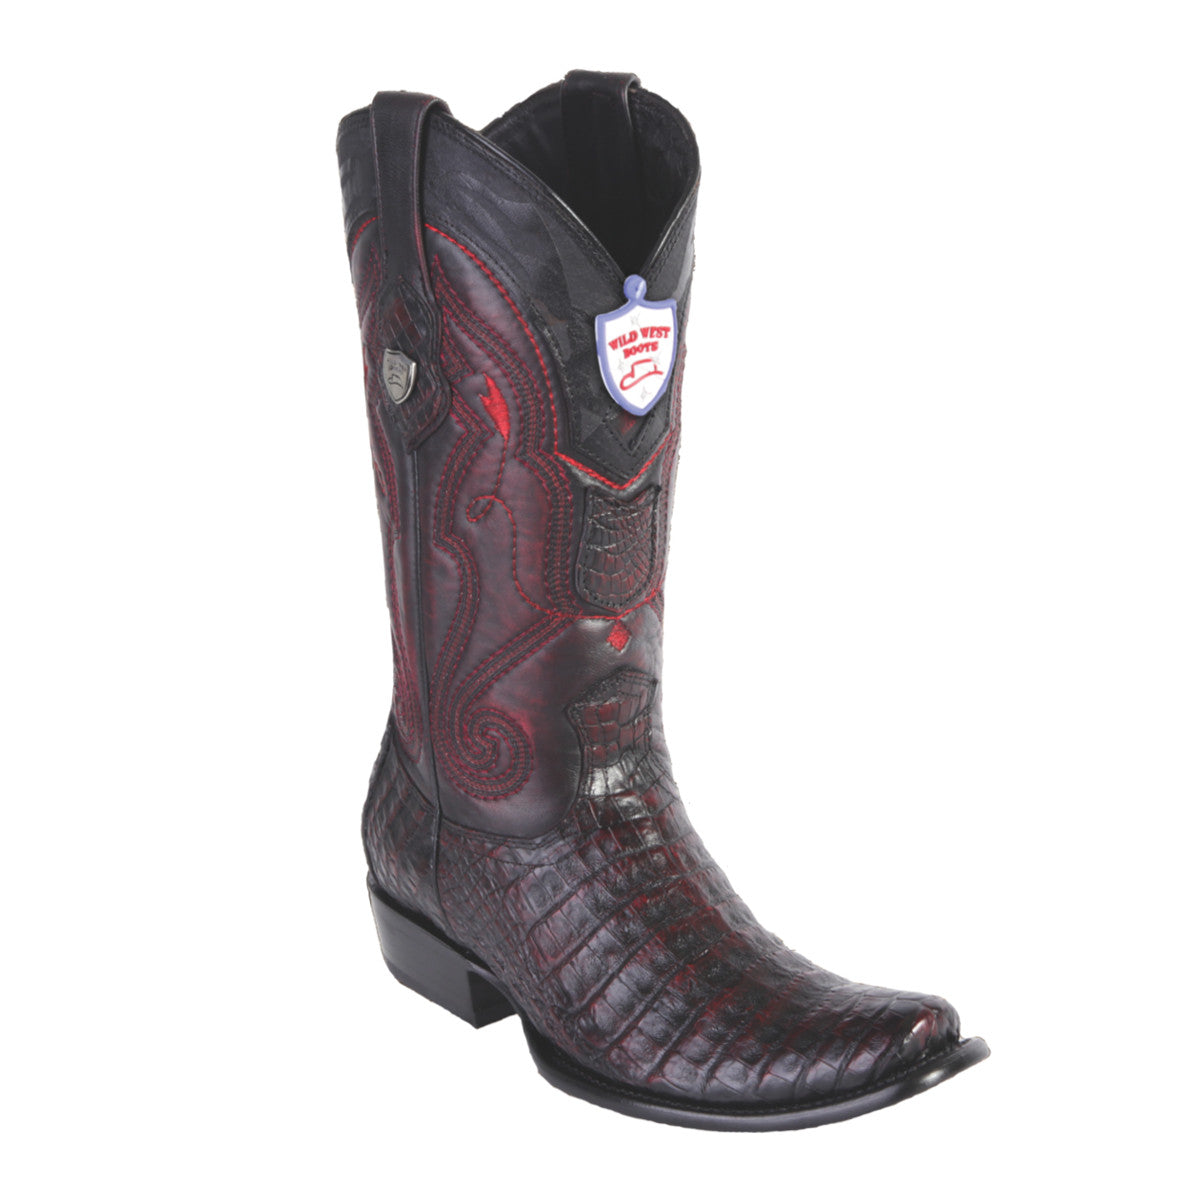 Wild West Boots H79 Dubai Boot Caiman Belly - Black Cherry